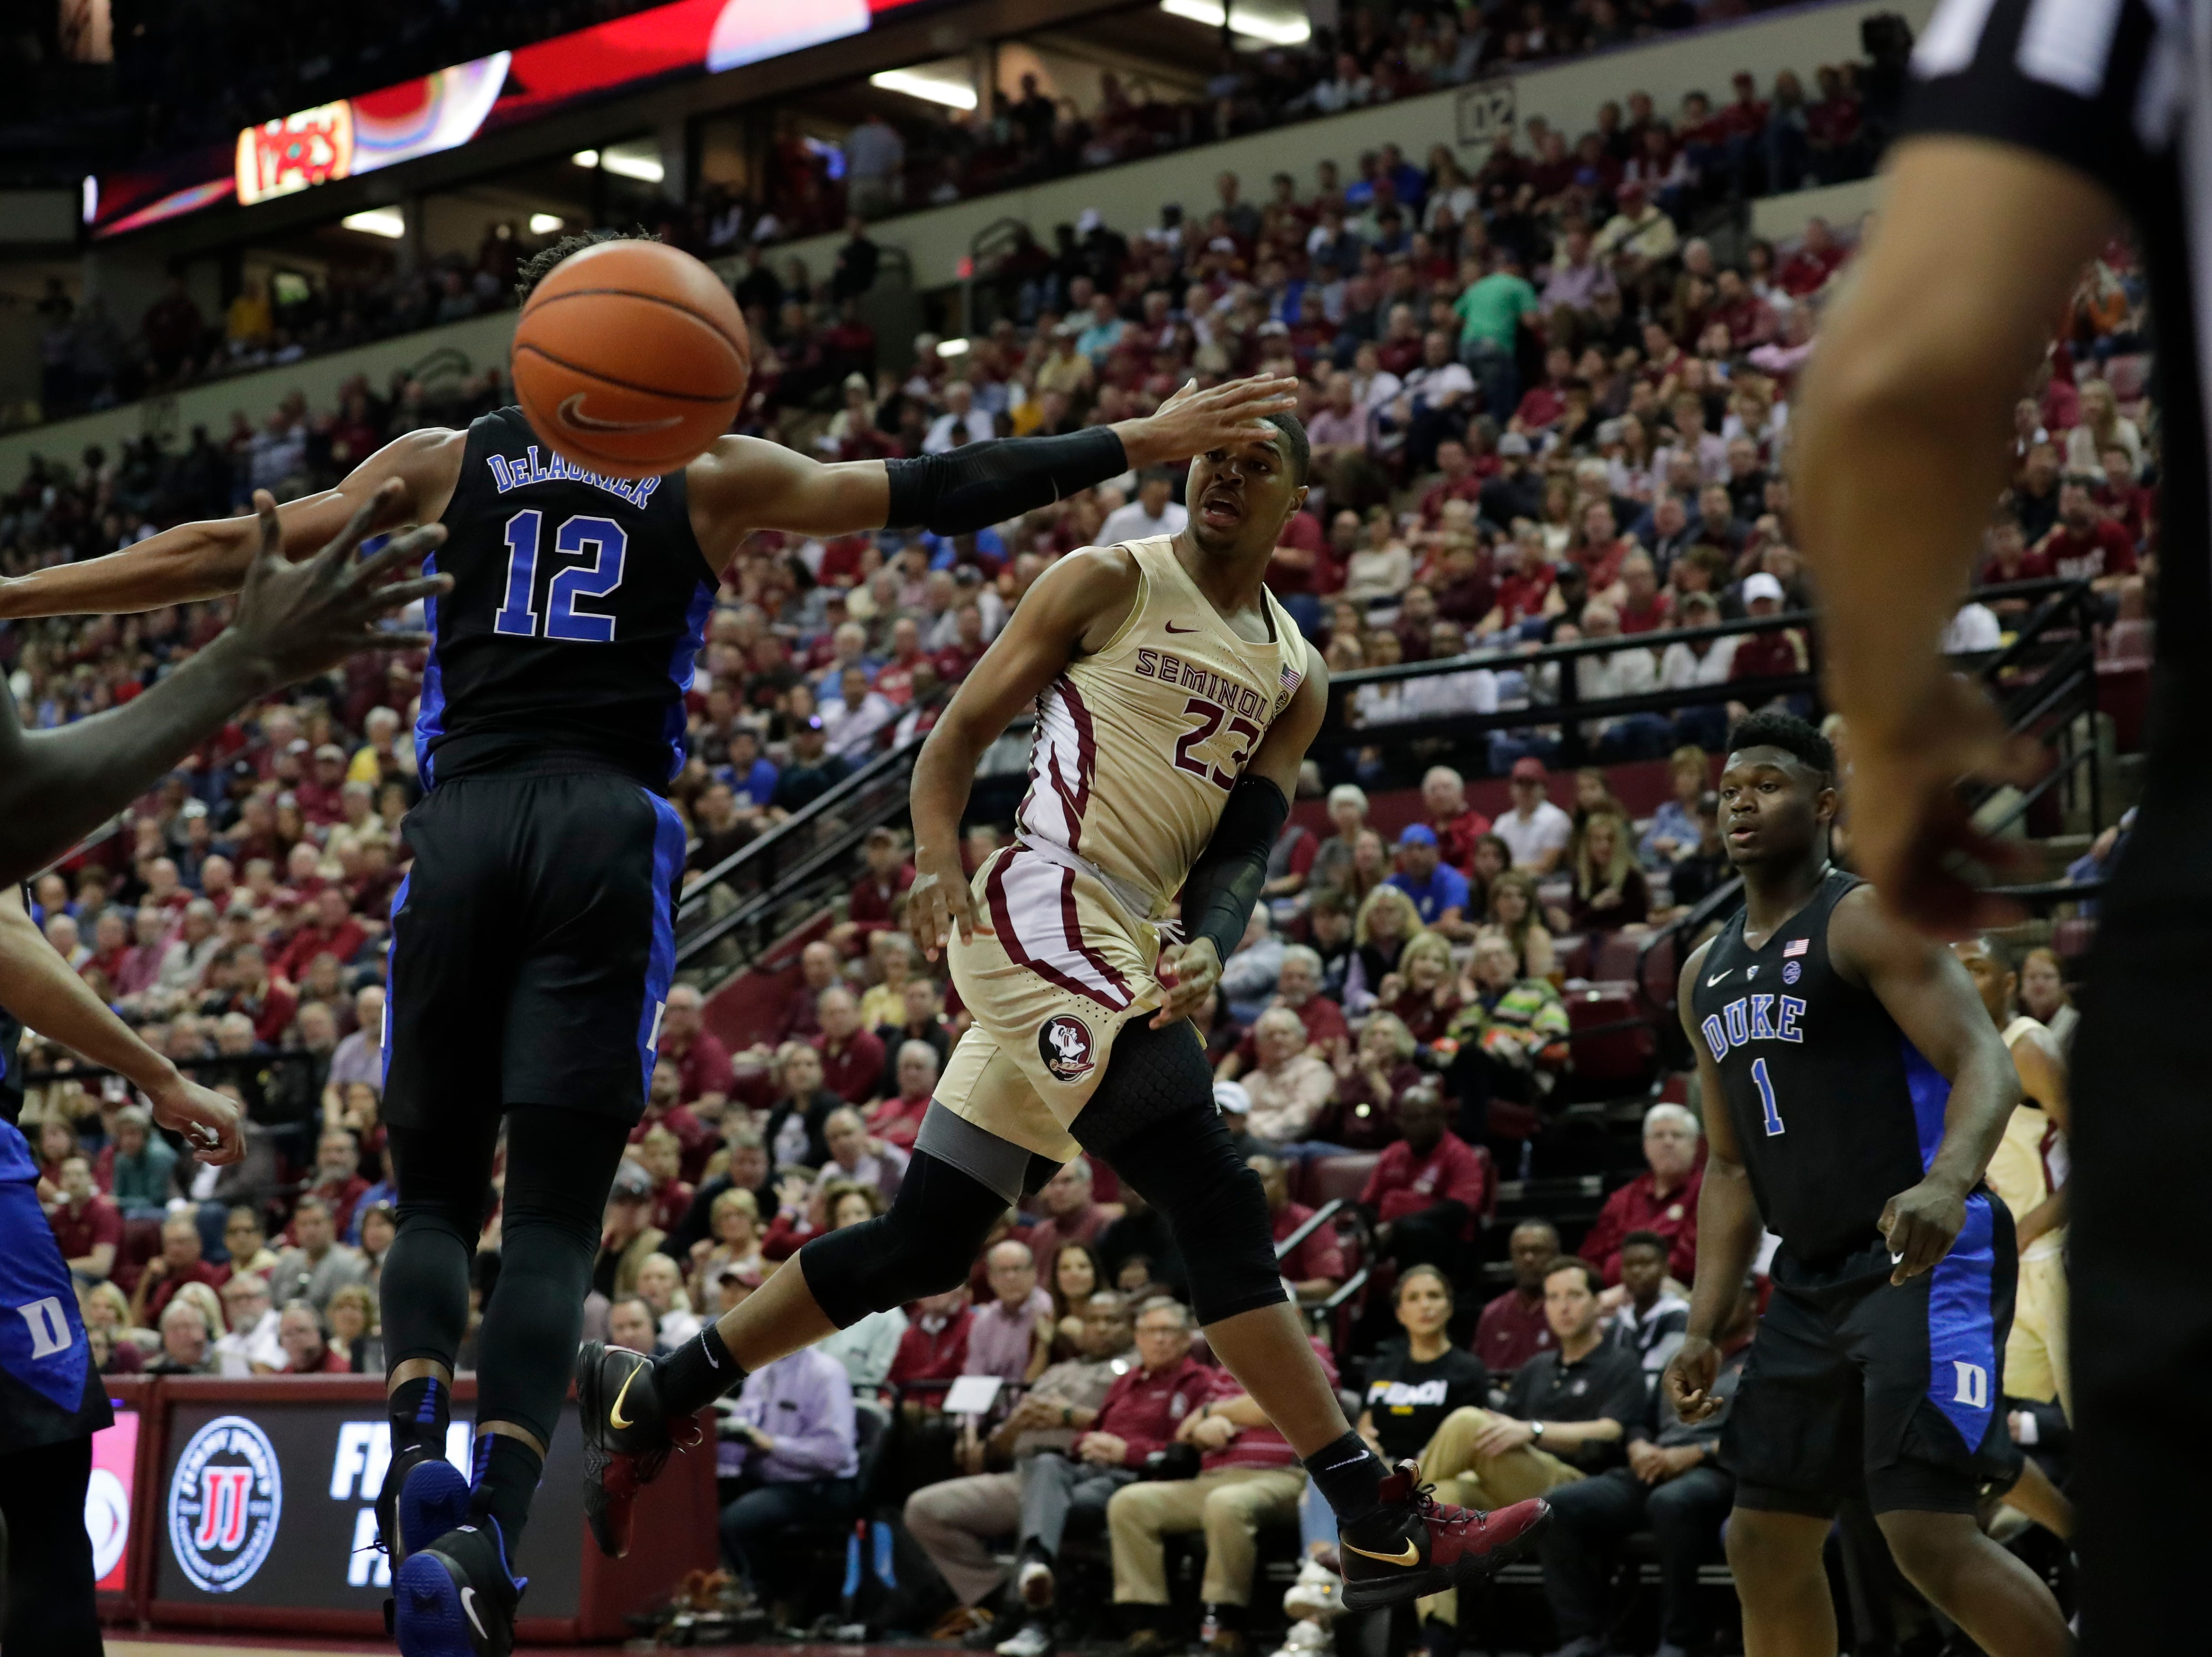 Florida State Seminoles guard M.J. Walker (23) passes around Duke Blue Devils forward Javin DeLaurier (12) to an open teammate. Ranked 13 in the ACC, the Florida State Seminoles host the number 1 team, the Duke Blue Devils, at the Tucker Civic Center, Saturday, Jan. 12, 2019.